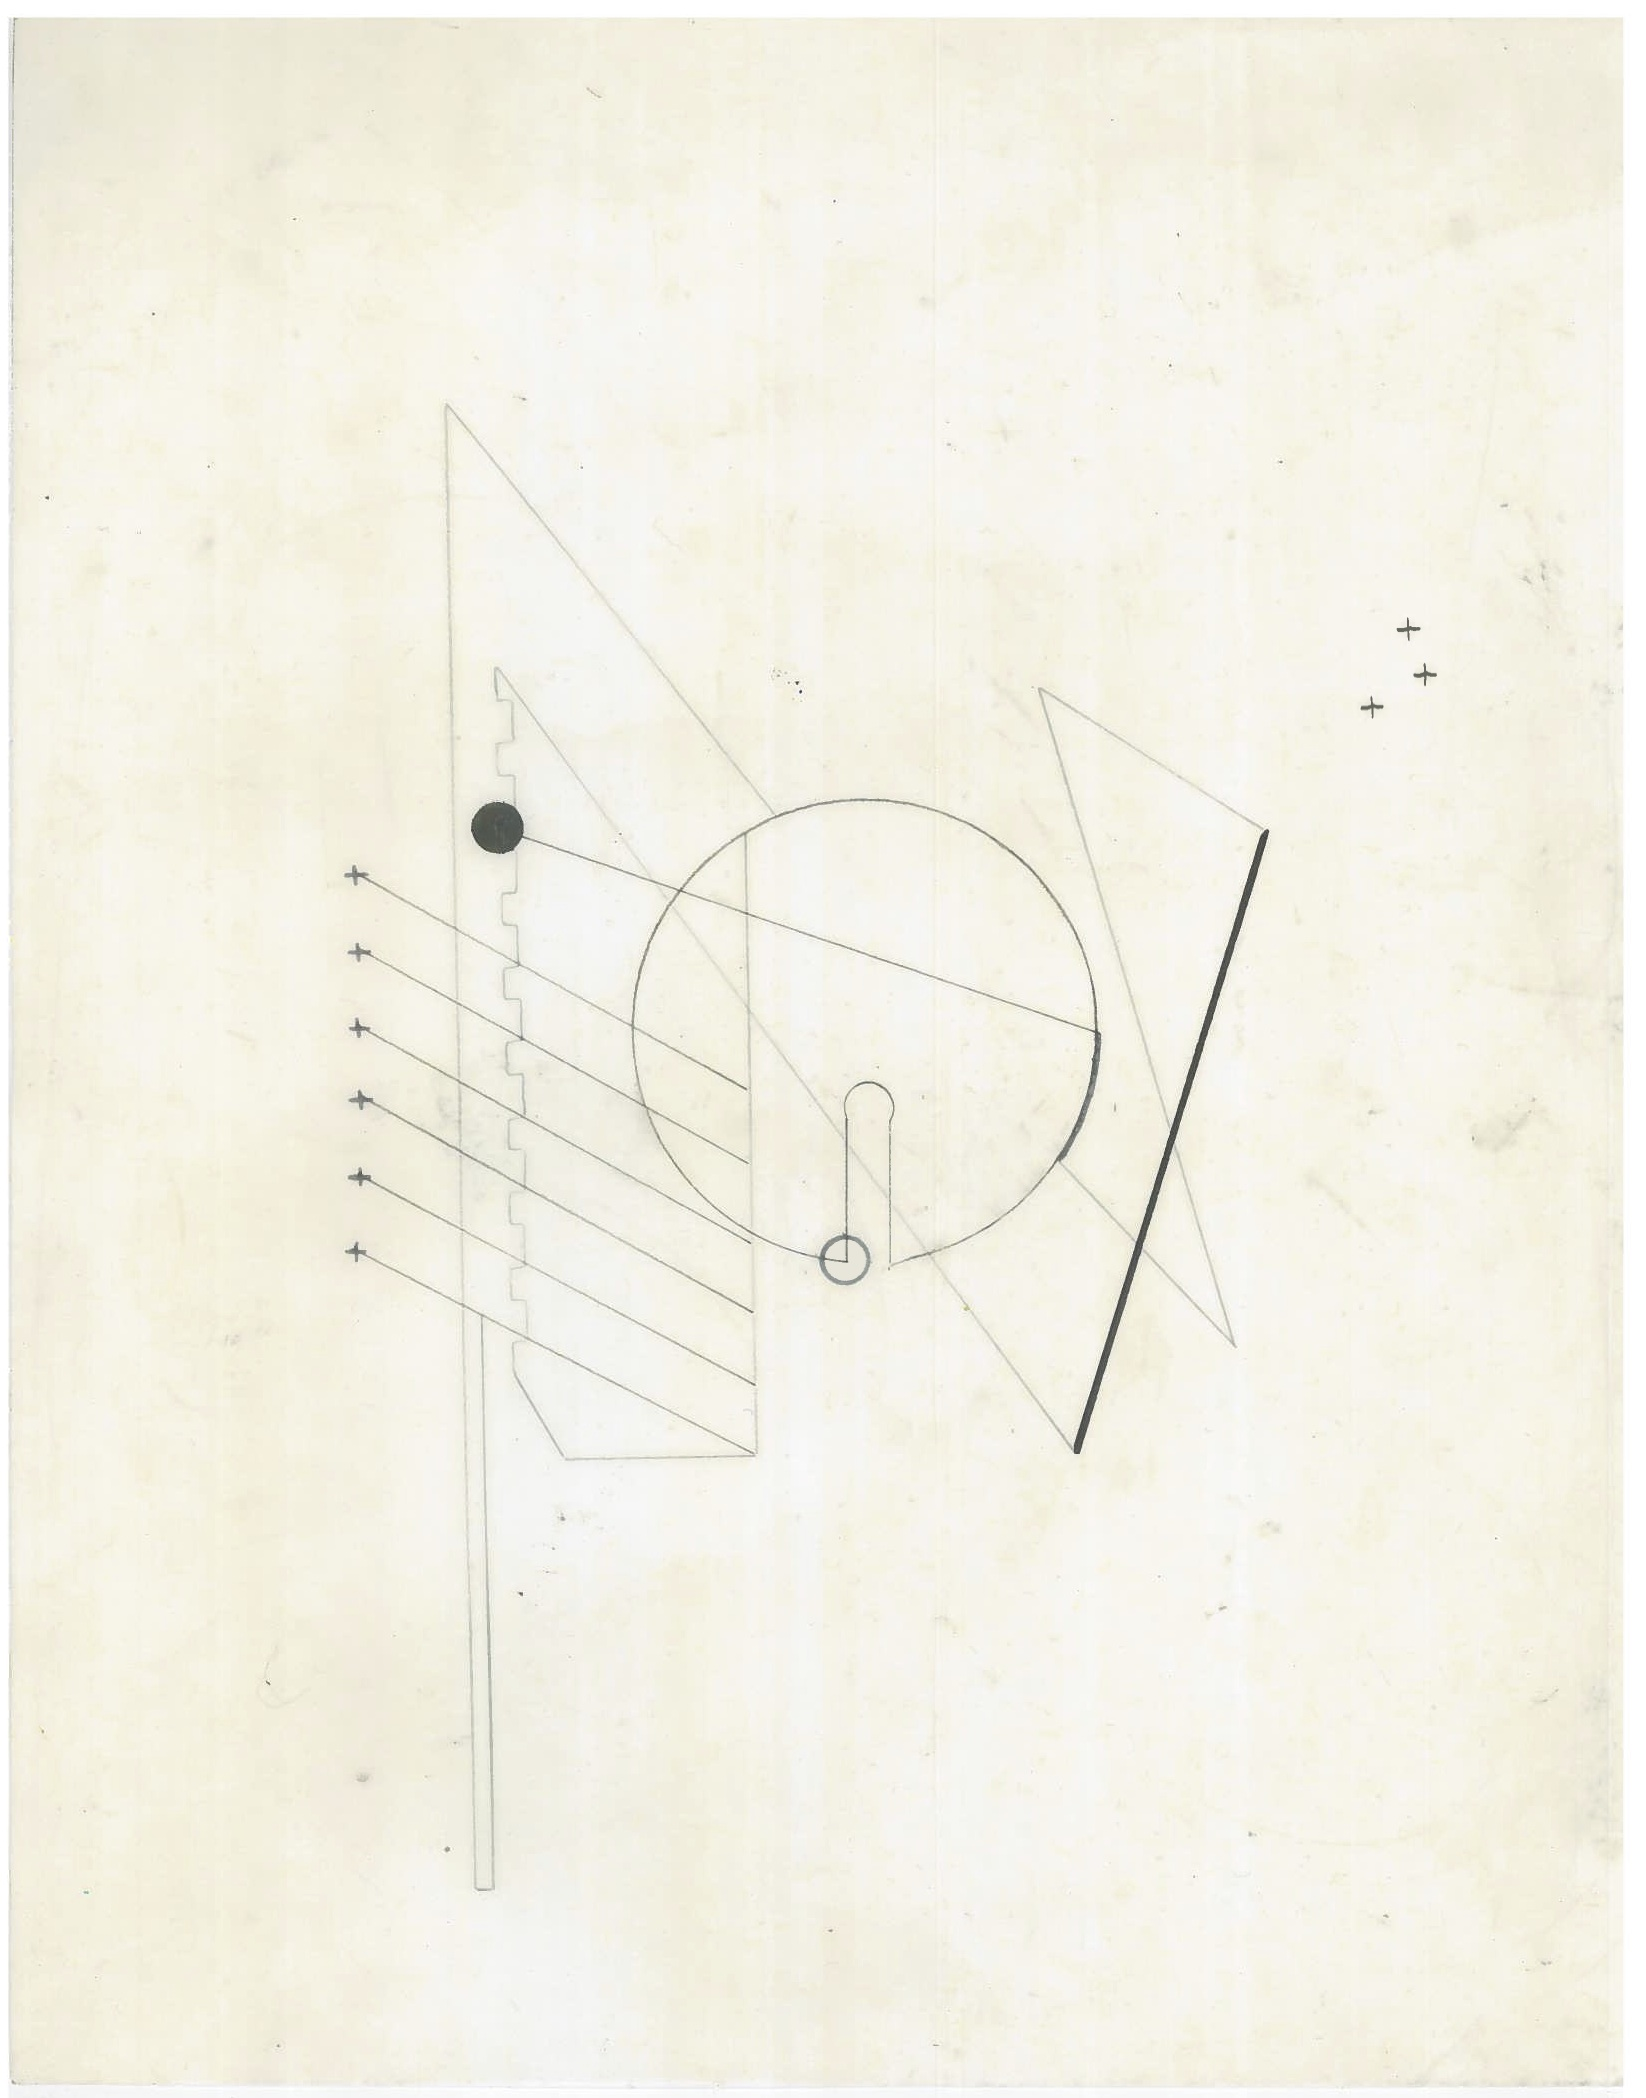 Untitled (the city, observations 21B)  Pencil on oiled fabriano paper  279mm x 216mm  December 2013